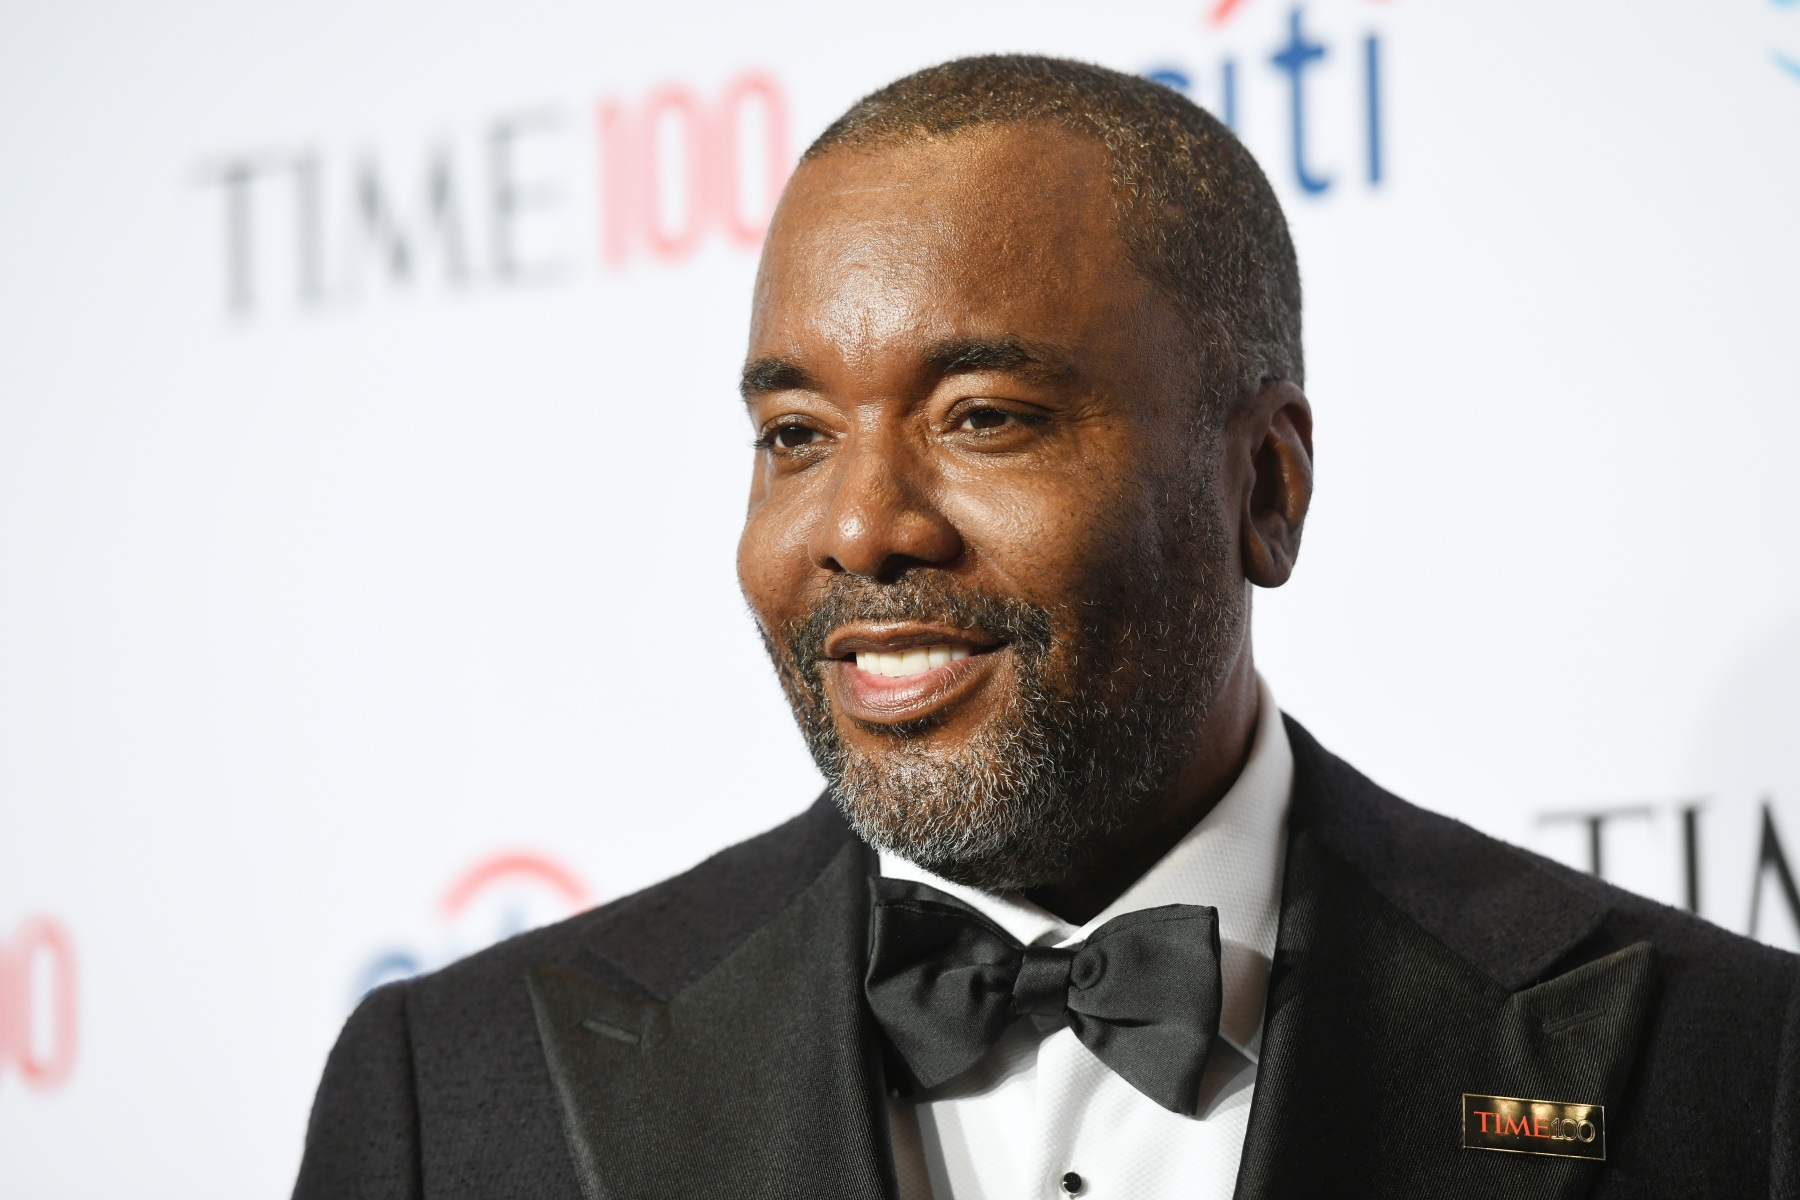 Lee Daniels attends the TIME 100 Gala 2019